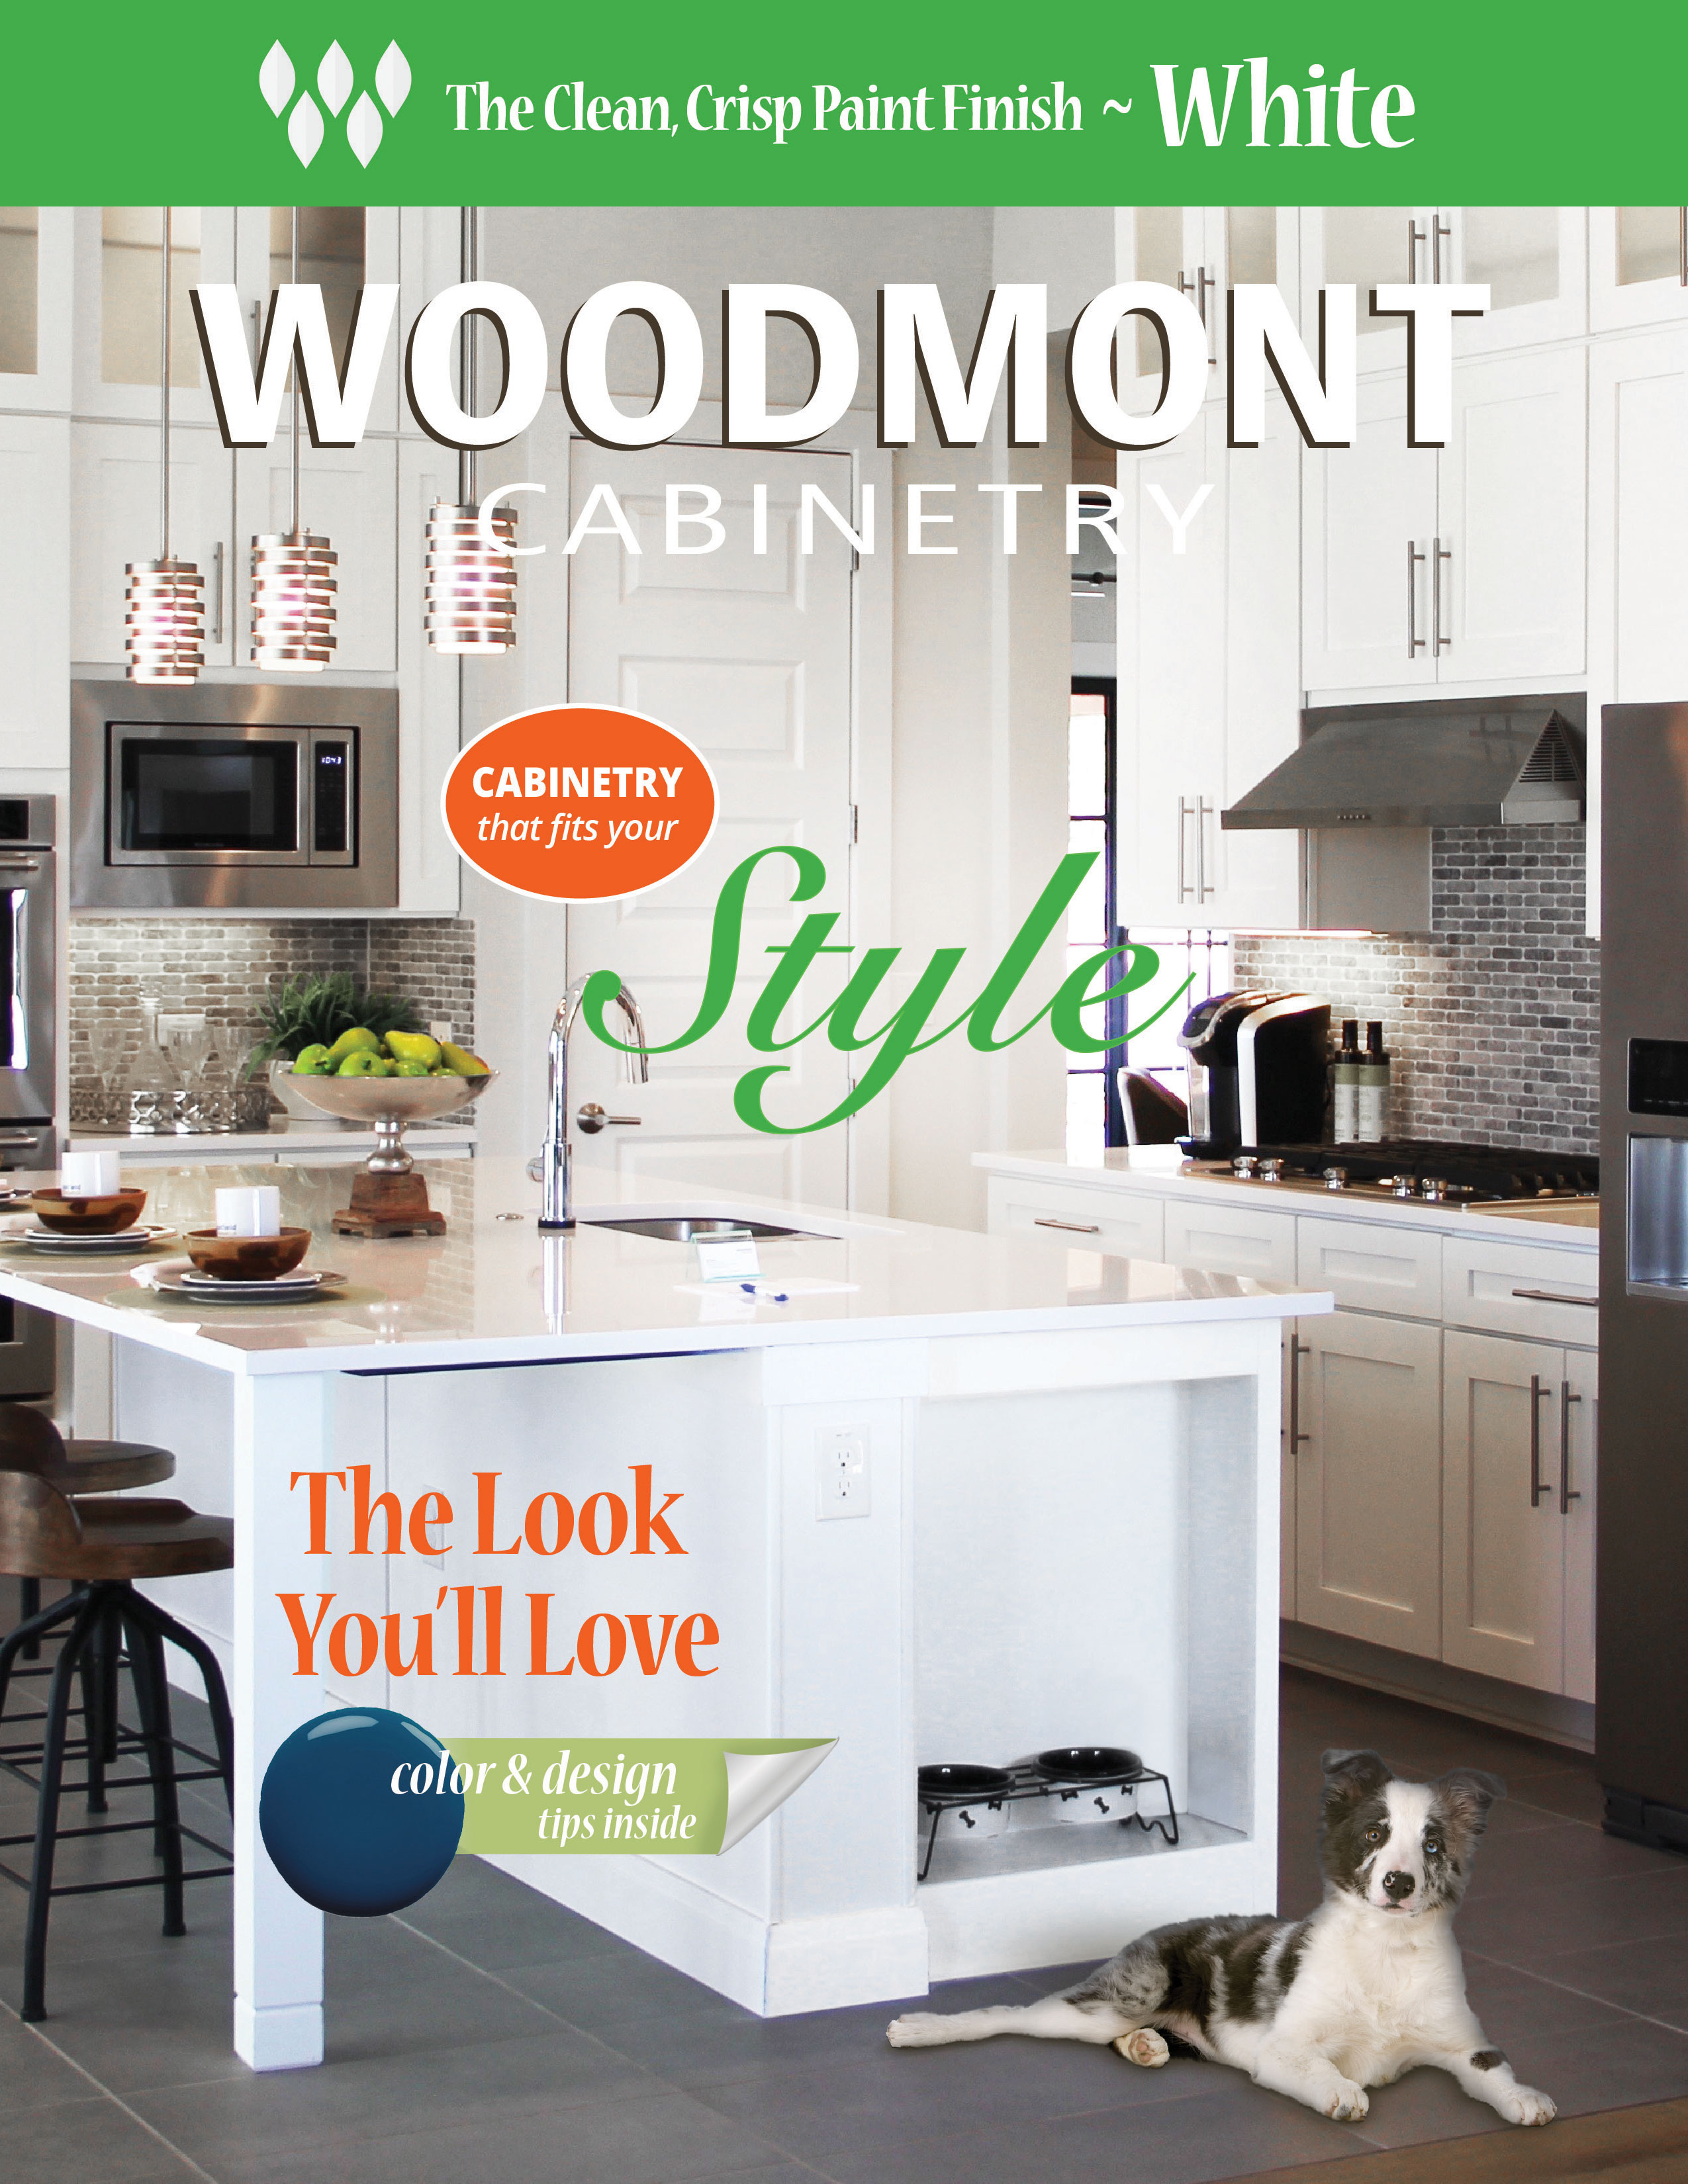 Charmant Woodmont Cabinetry